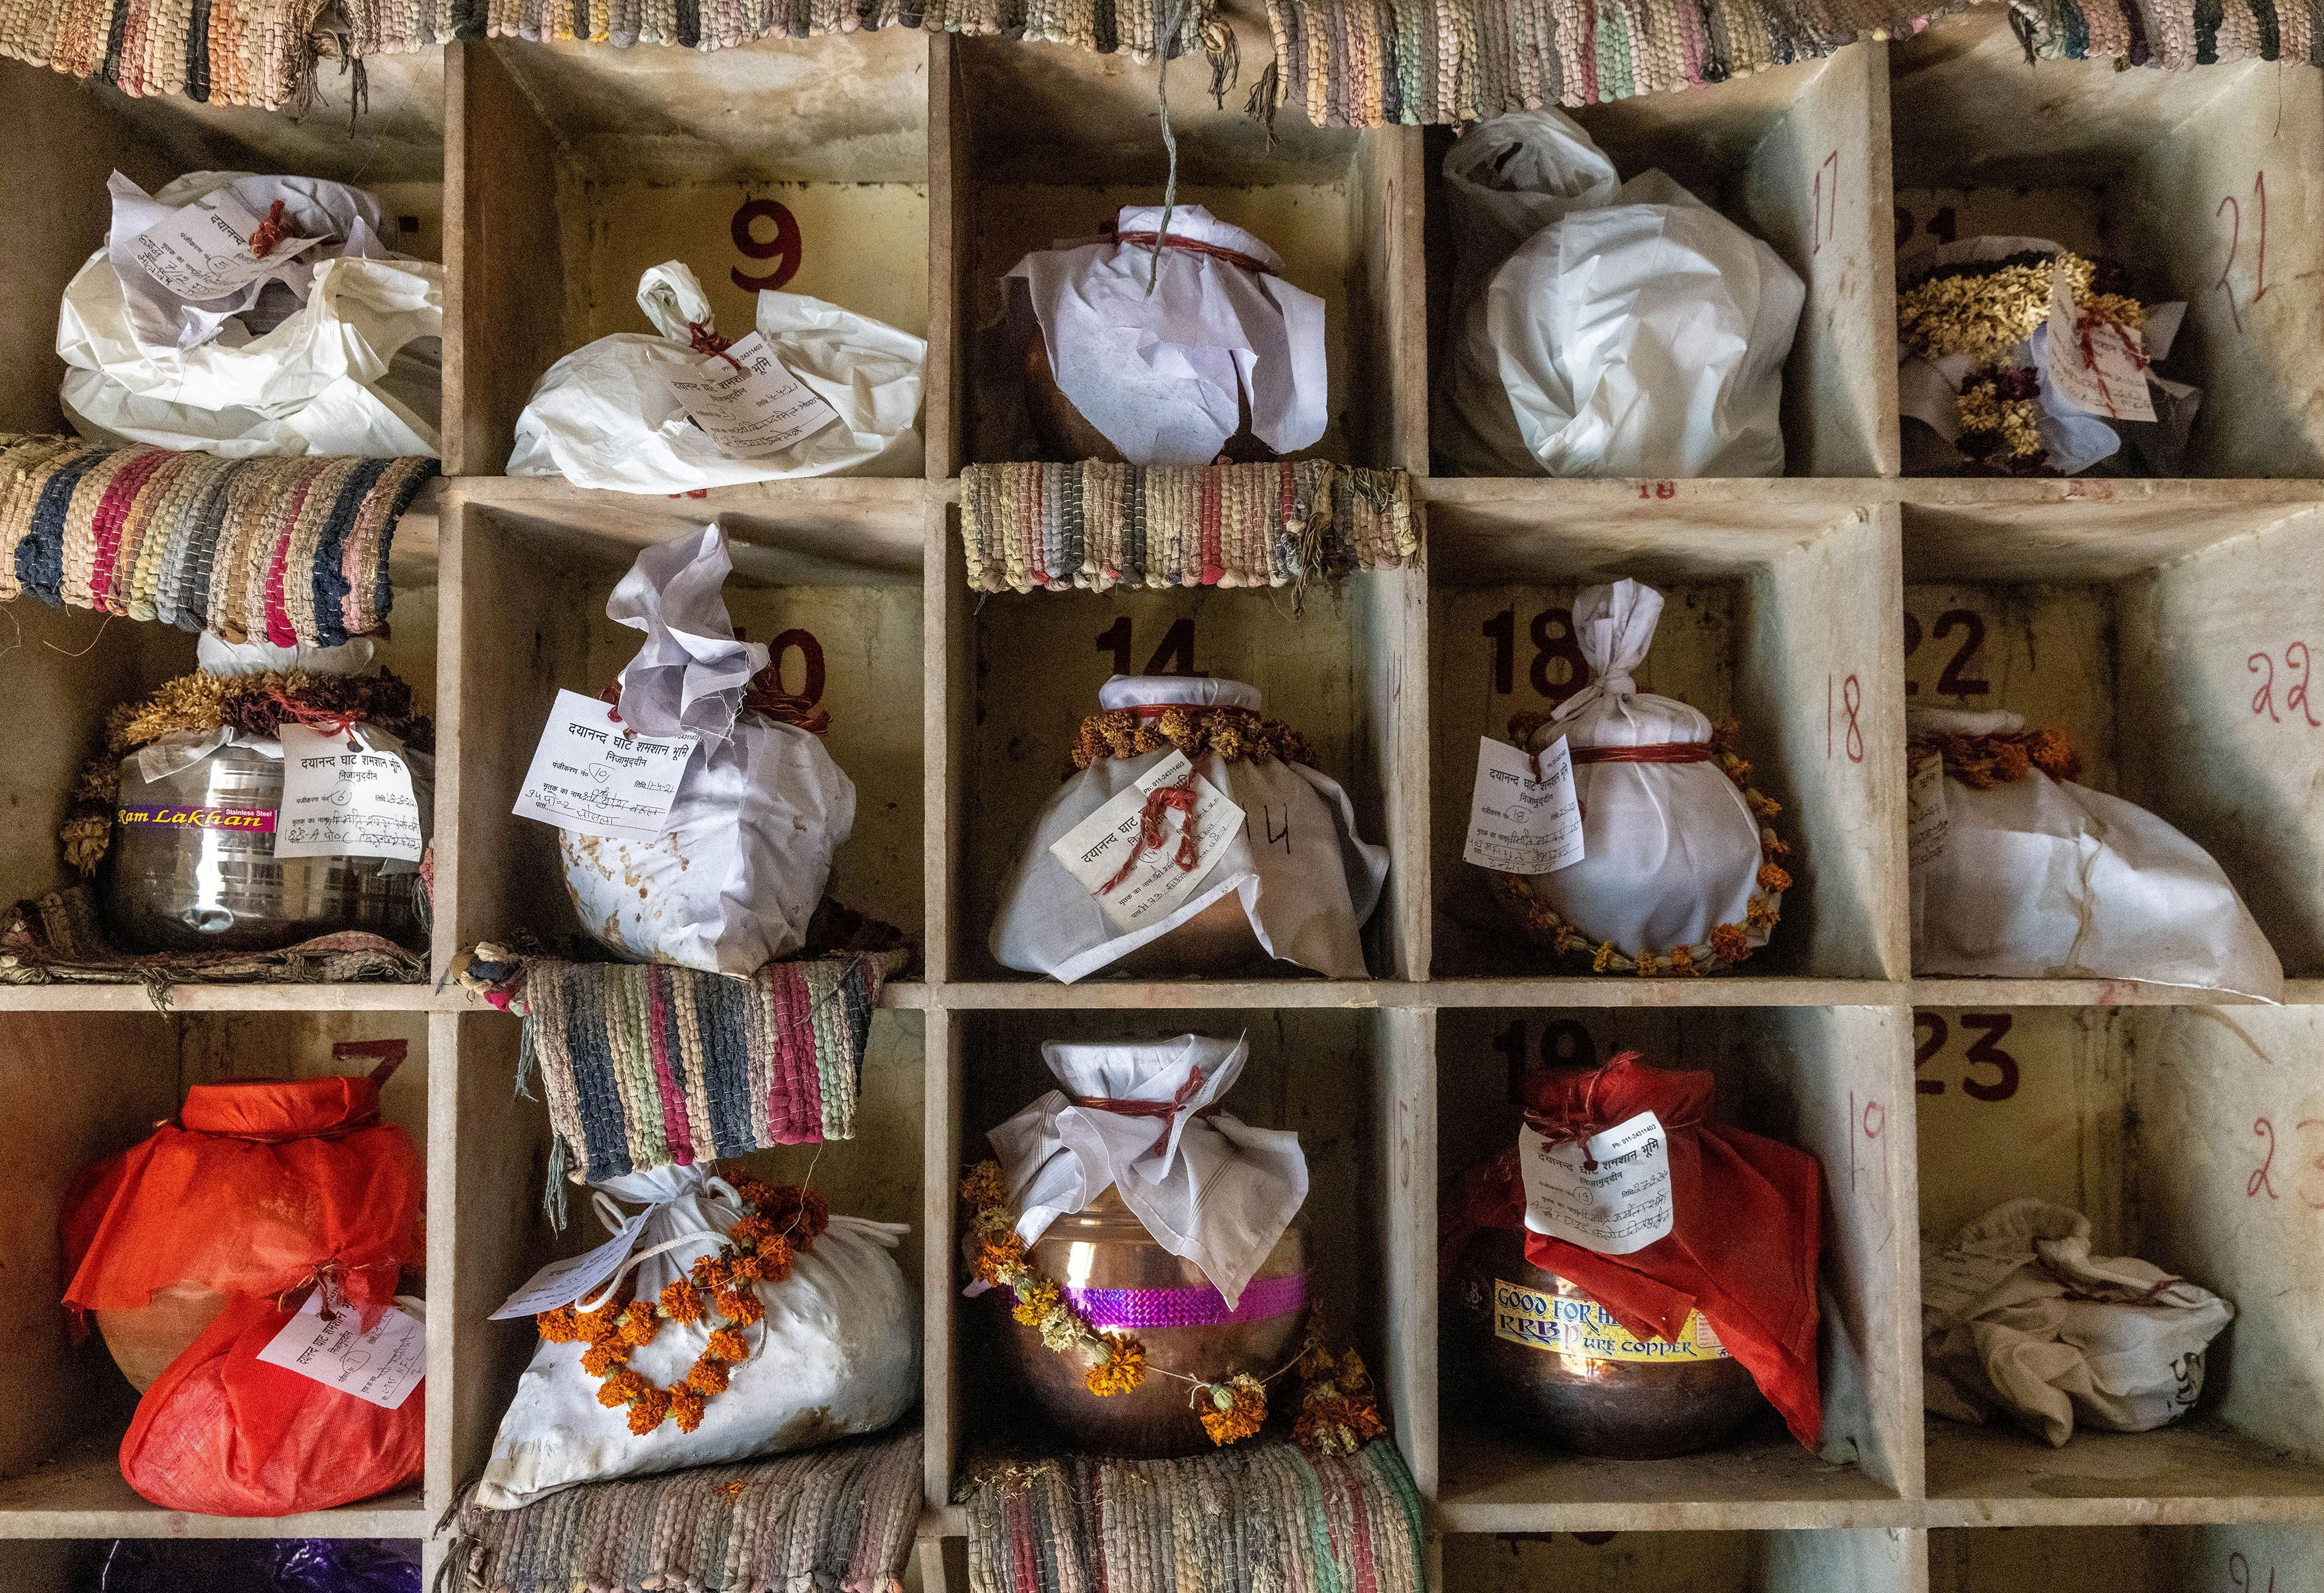 Urns containing ashes after final rites of people including those who died from the coronavirus disease (COVID-19) await immersion due to lockdown, at a crematorium in New Delhi, India, May 6, 2021. REUTERS/Danish Siddiqui/File Photo